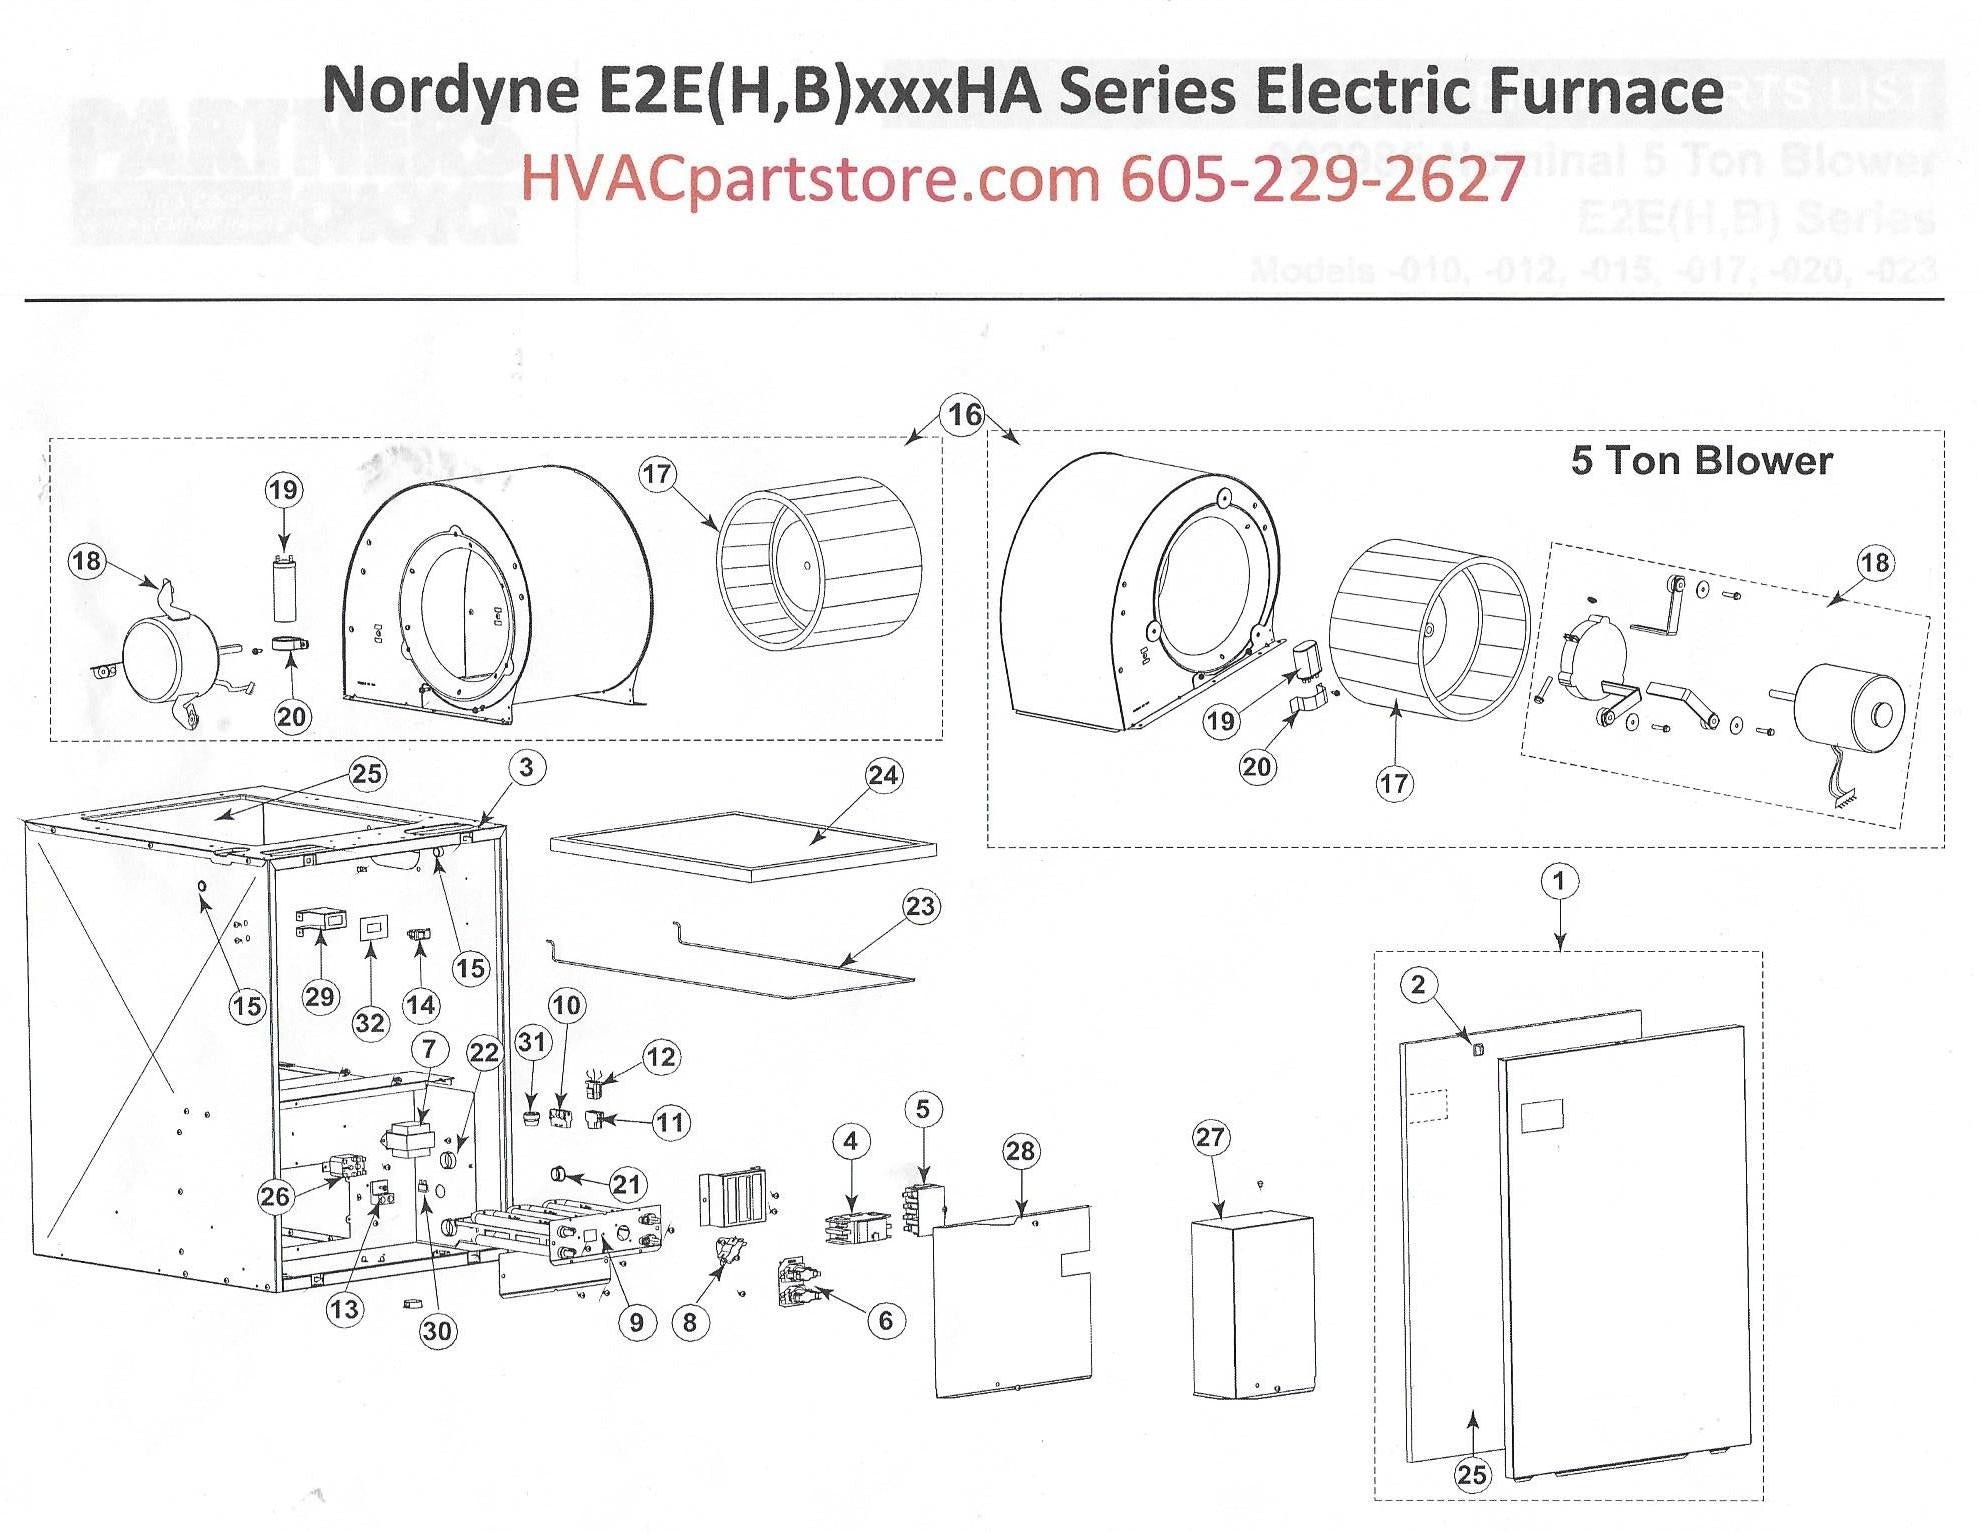 E2eb023ha nordyne electric furnace parts hvacpartstore click here to view a parts listing for the e2eb023ha which includes partial wiring diagrams that we currently have available asfbconference2016 Choice Image